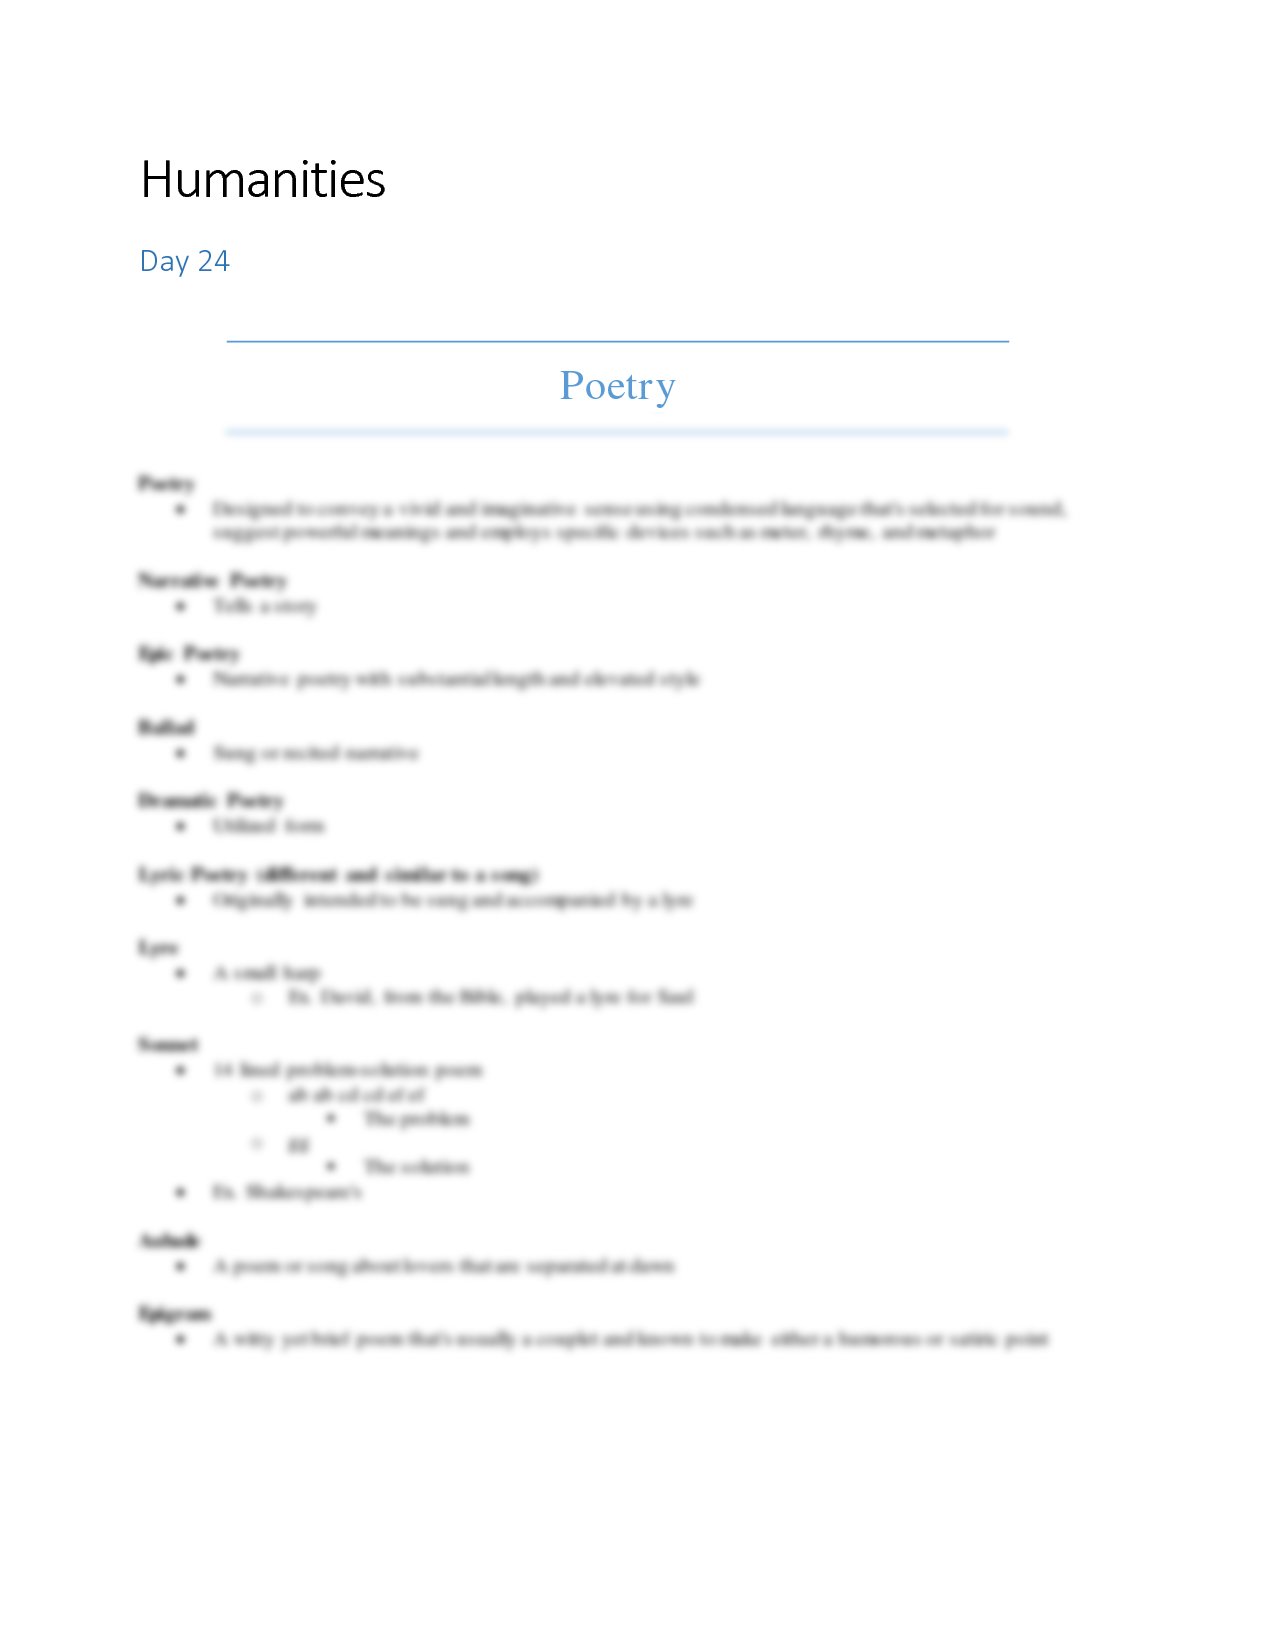 solution humanities essays and views studypool humanitiesday 24poetrypoetry designed to convey a vivid and imaginative sense using condensed language that s selected for sound suggest powerful meanings